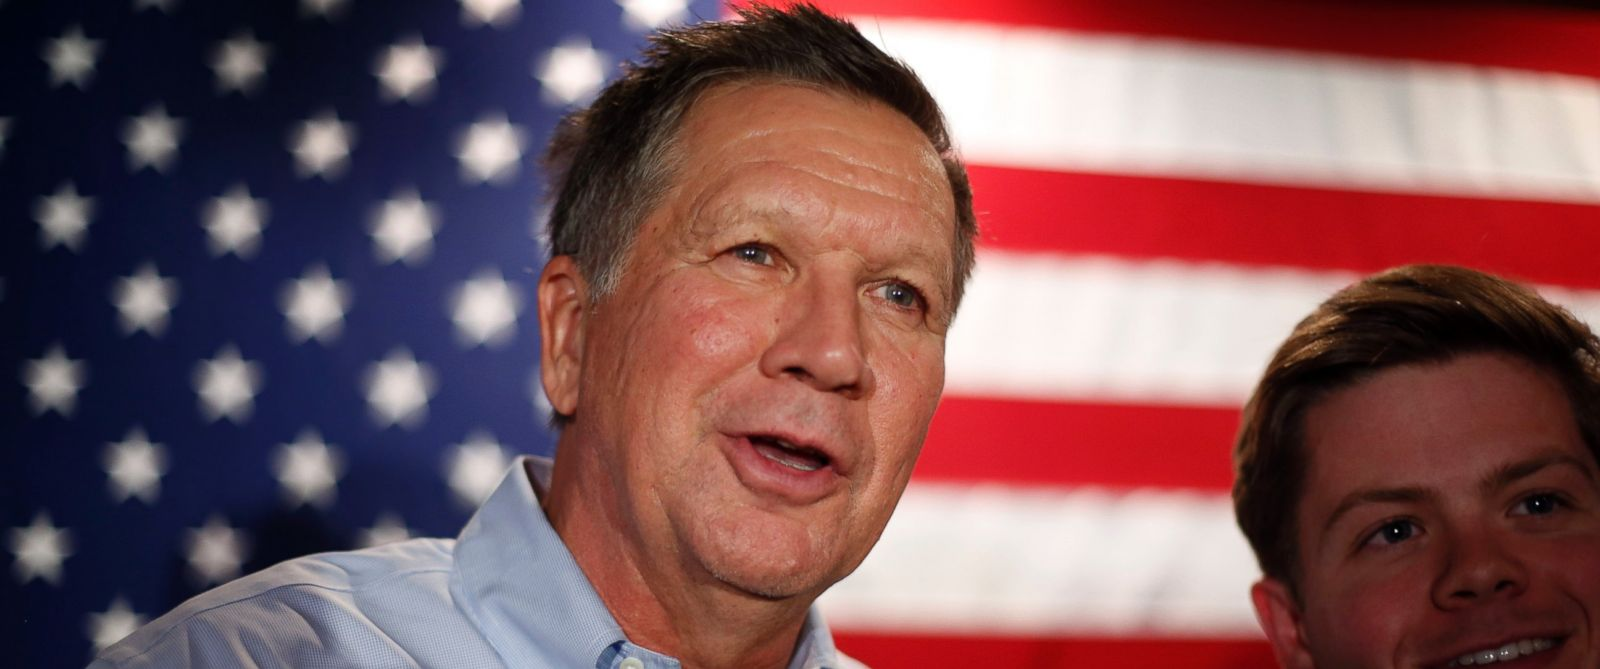 PHOTO: Republican presidential candidate, Ohio Gov. John Kasich meets supporters after a town hall-style campaign event at the Three Chimneys Inn, Feb. 3, 2016, in Durham, N.H..